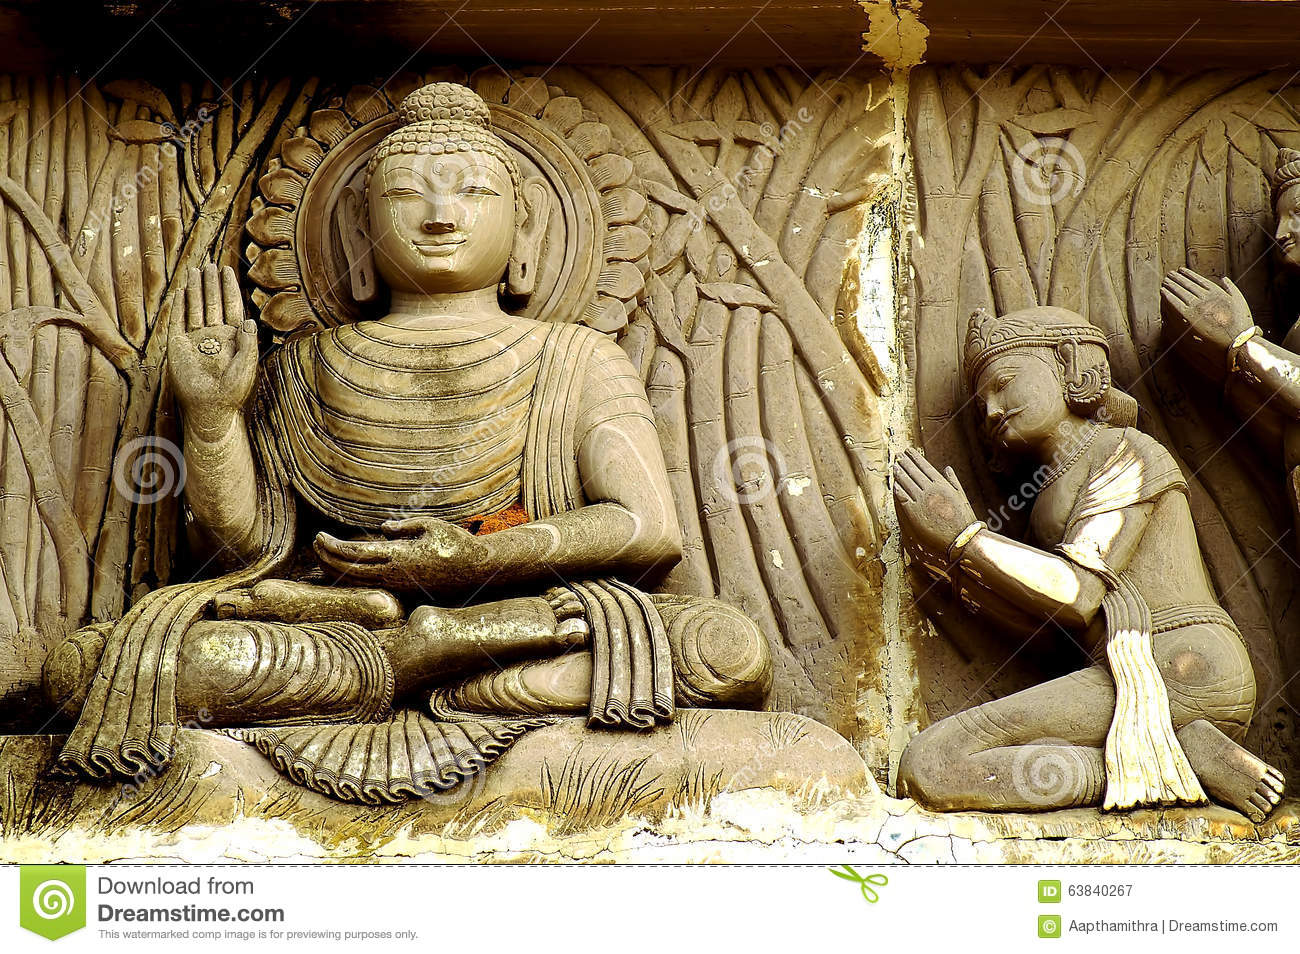 king asokas contribution to buddhism No matter a person's abilities, if he or she helps others – to that degree he or she will be powerful, happy, and long-lived that's why ashoka's leadership.